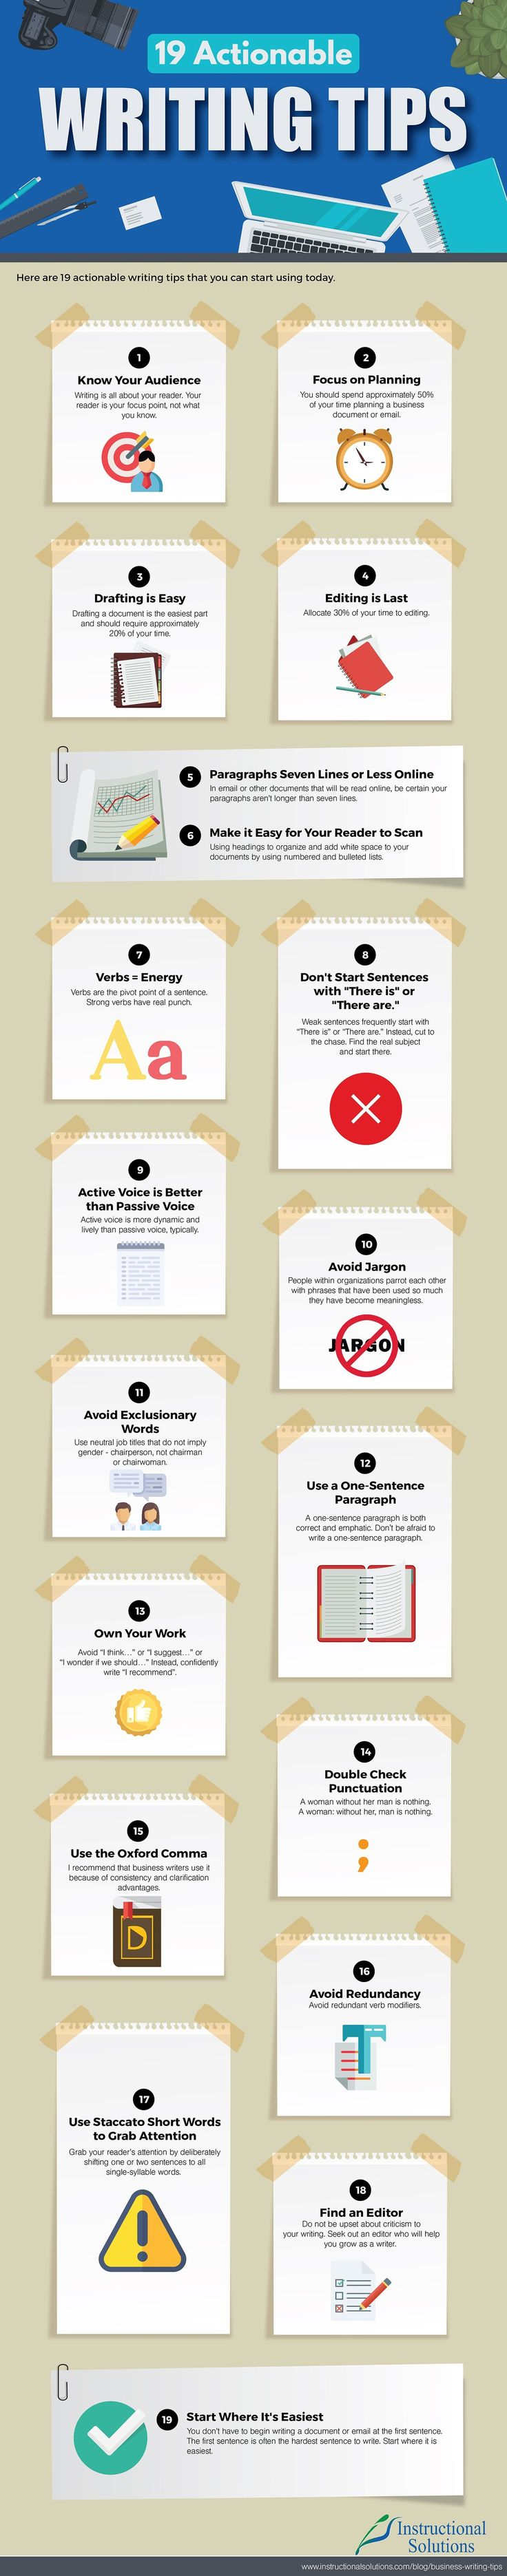 19 Actionable Writing Tips - Infographic - Writers Write